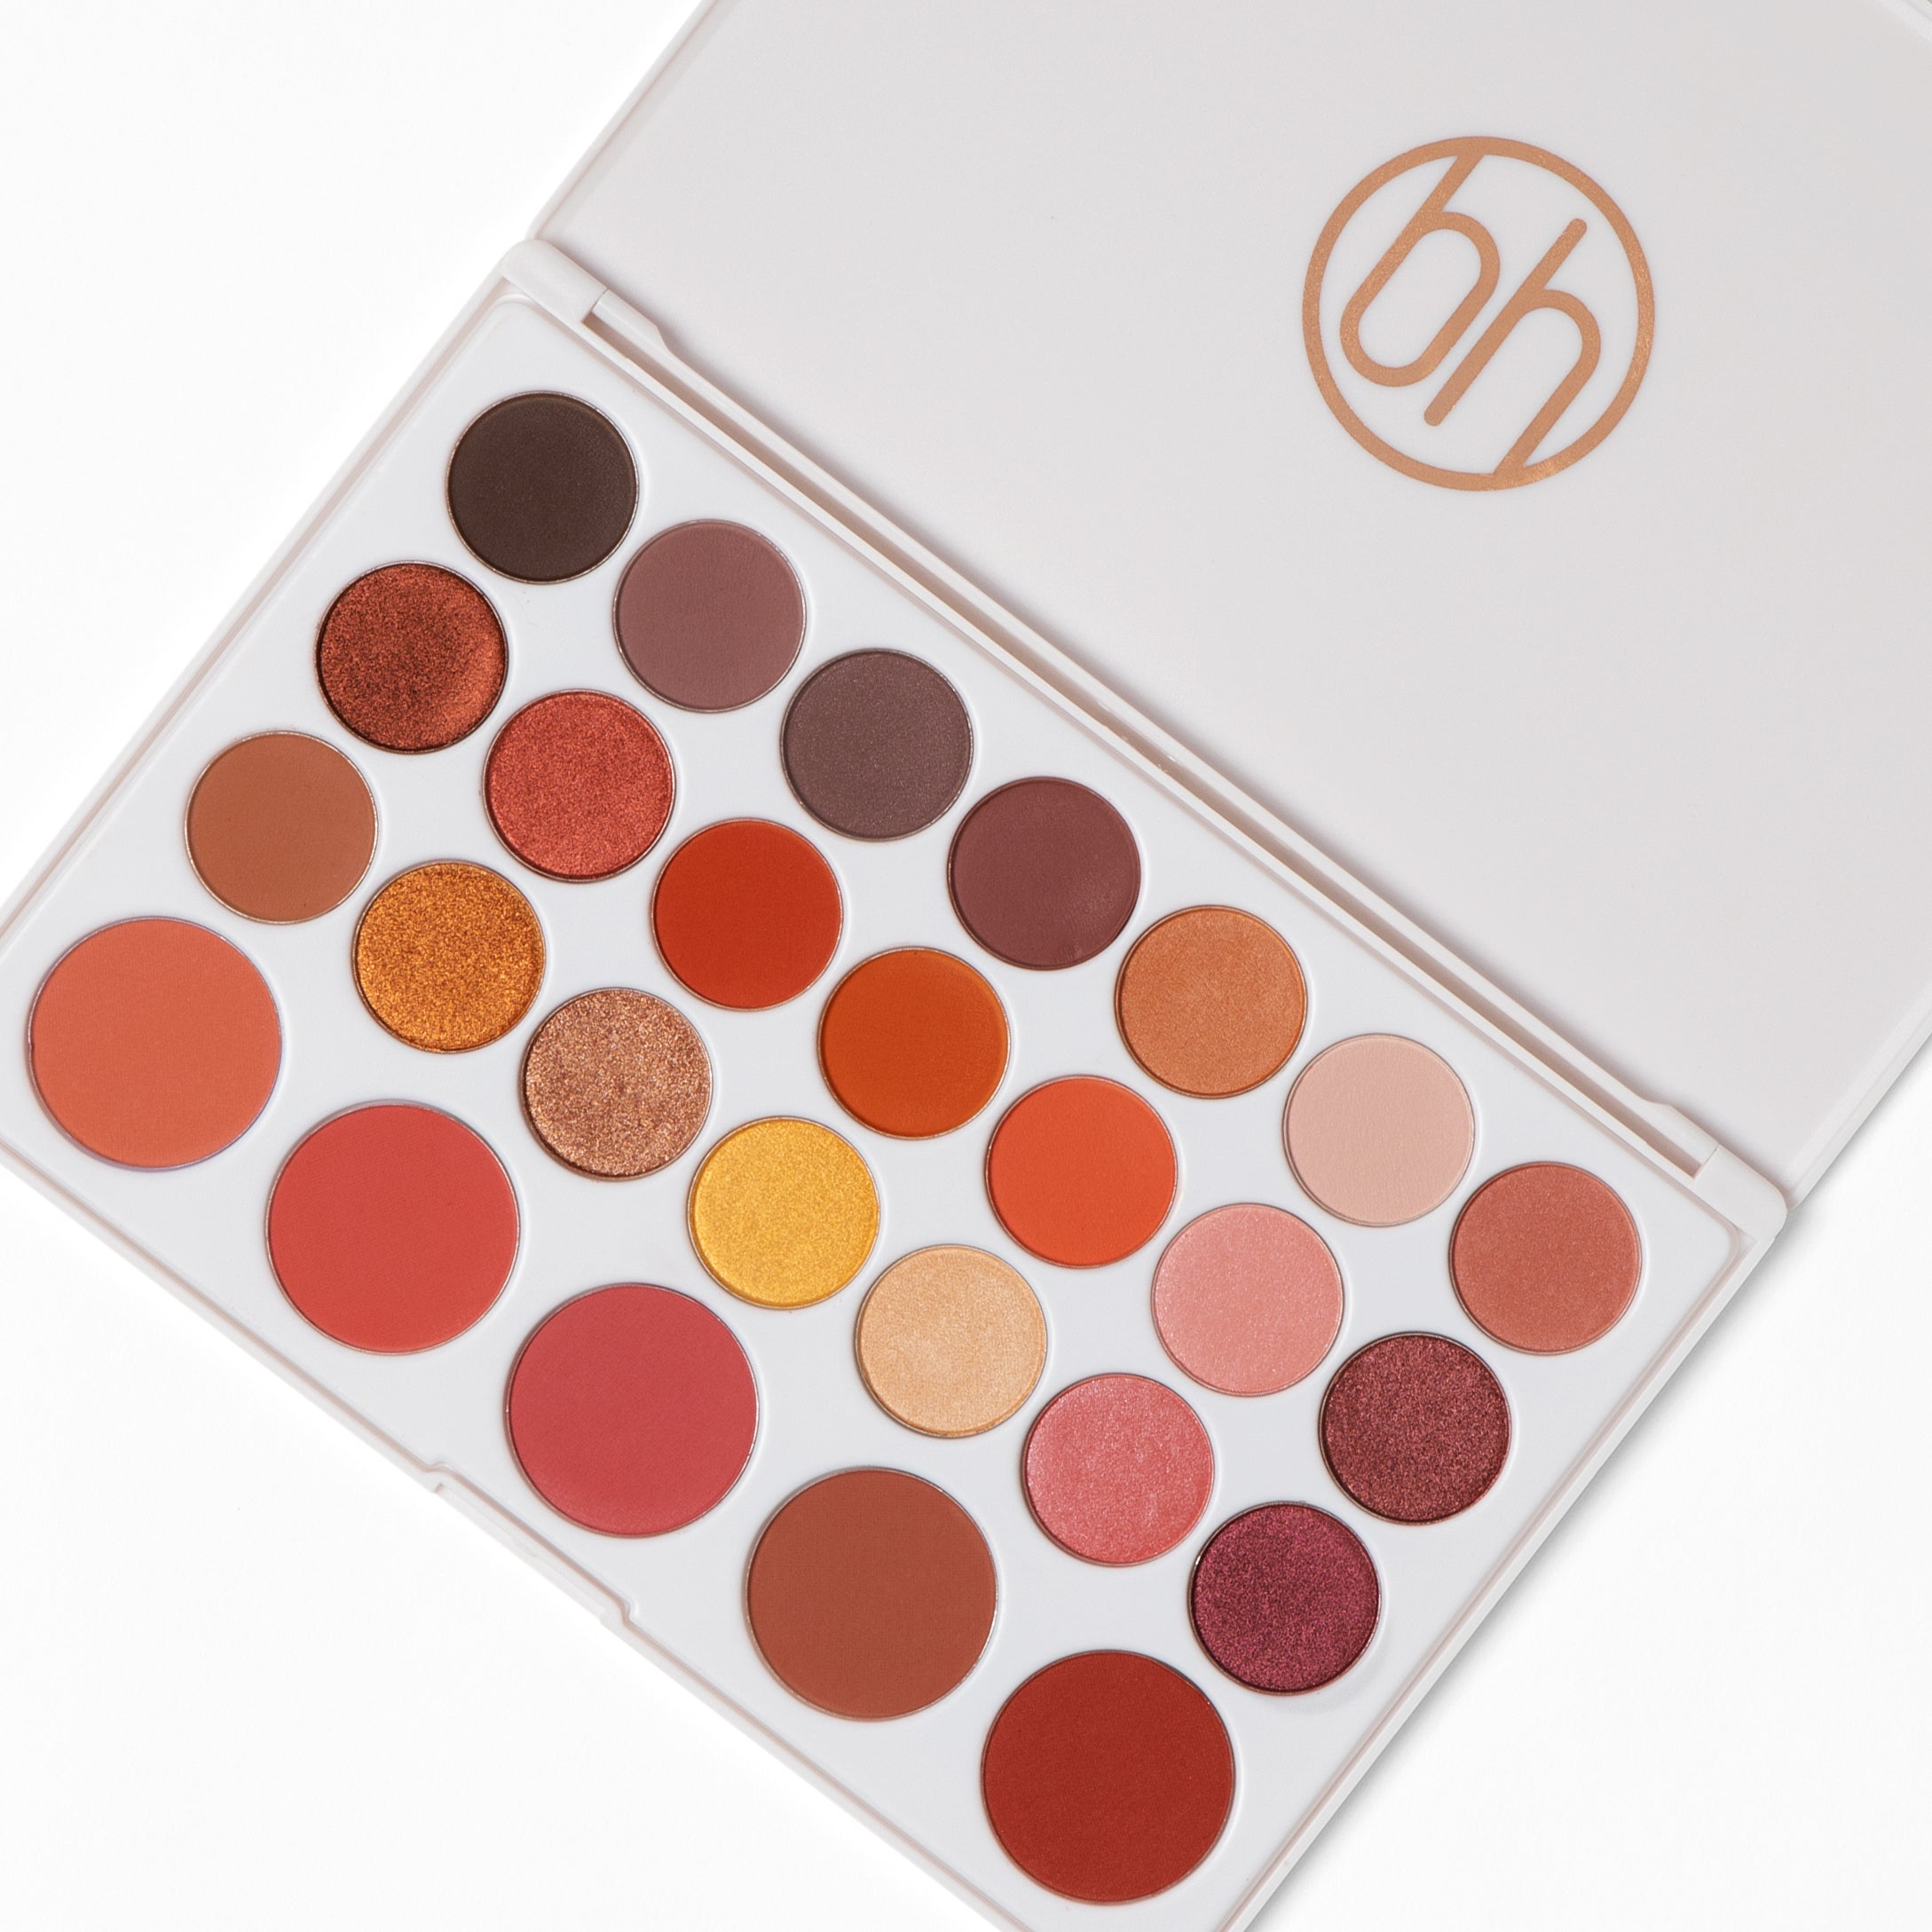 Classic Blush 10 Color Palette by BH Cosmetics #22